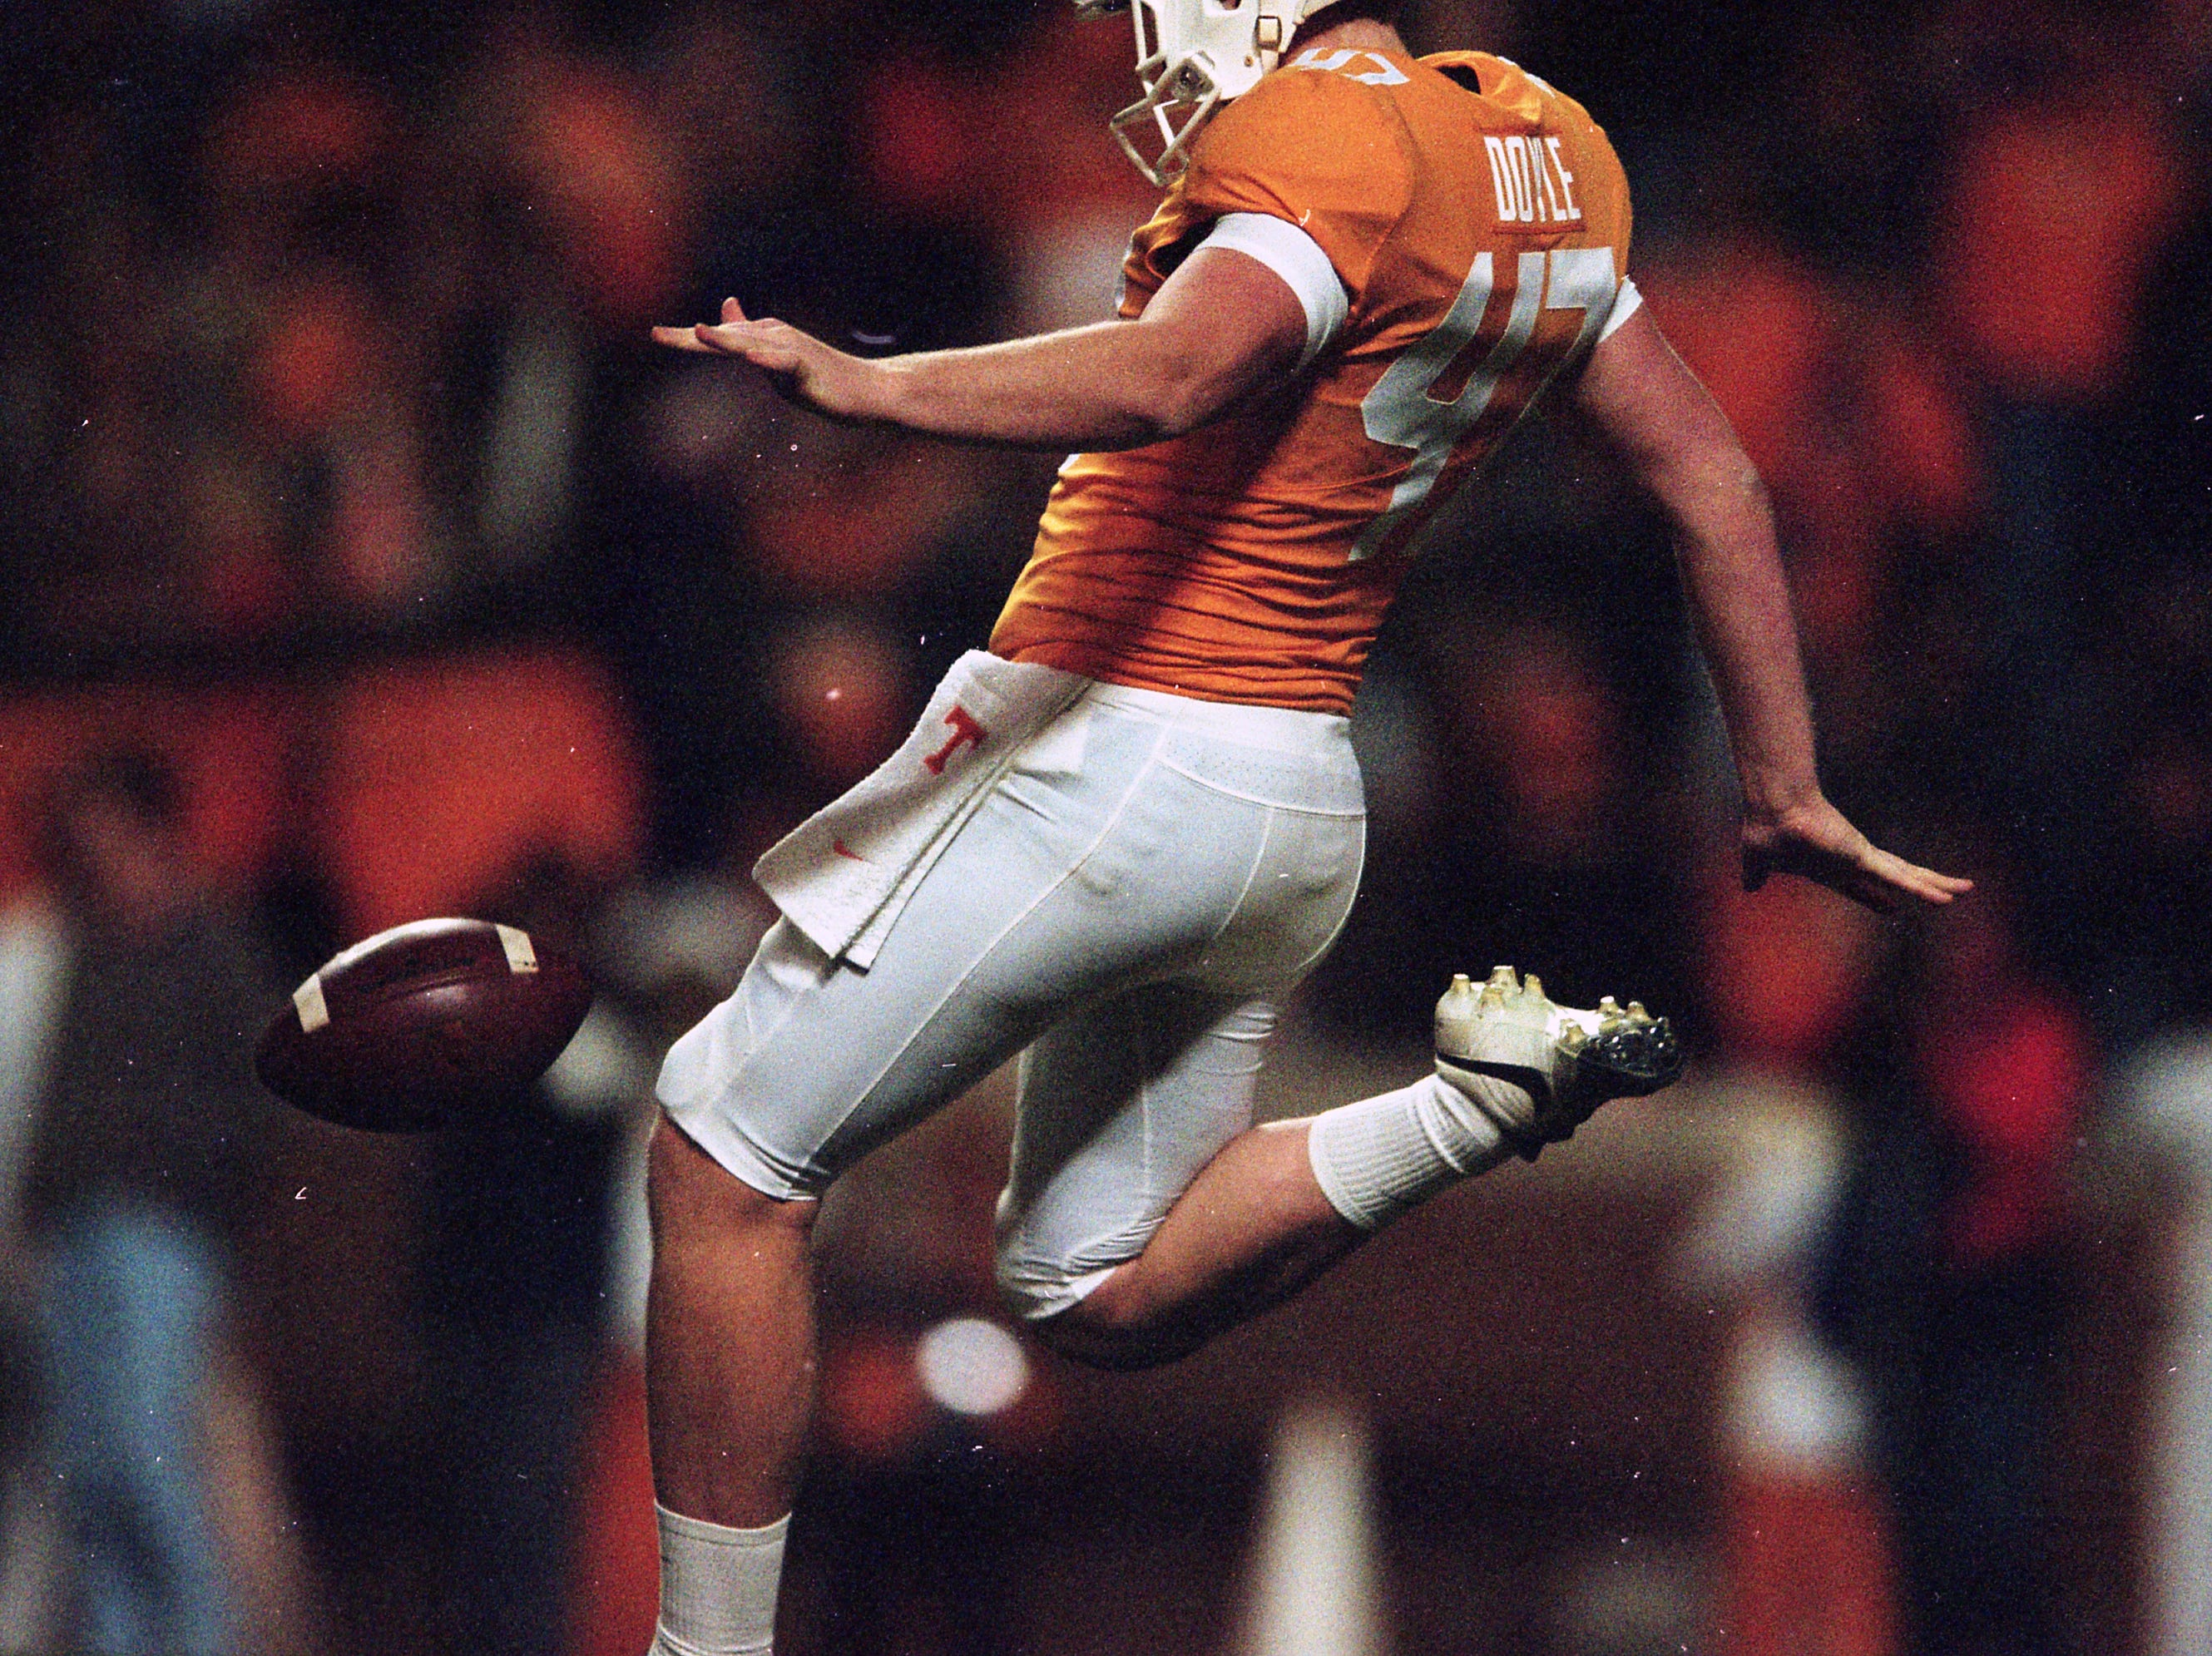 Tennessee punter Joe Doyle (47) punts the ball down the field during a game between Tennessee and Missouri at Neyland Stadium in Knoxville, Tennessee on Saturday, November 17, 2018.